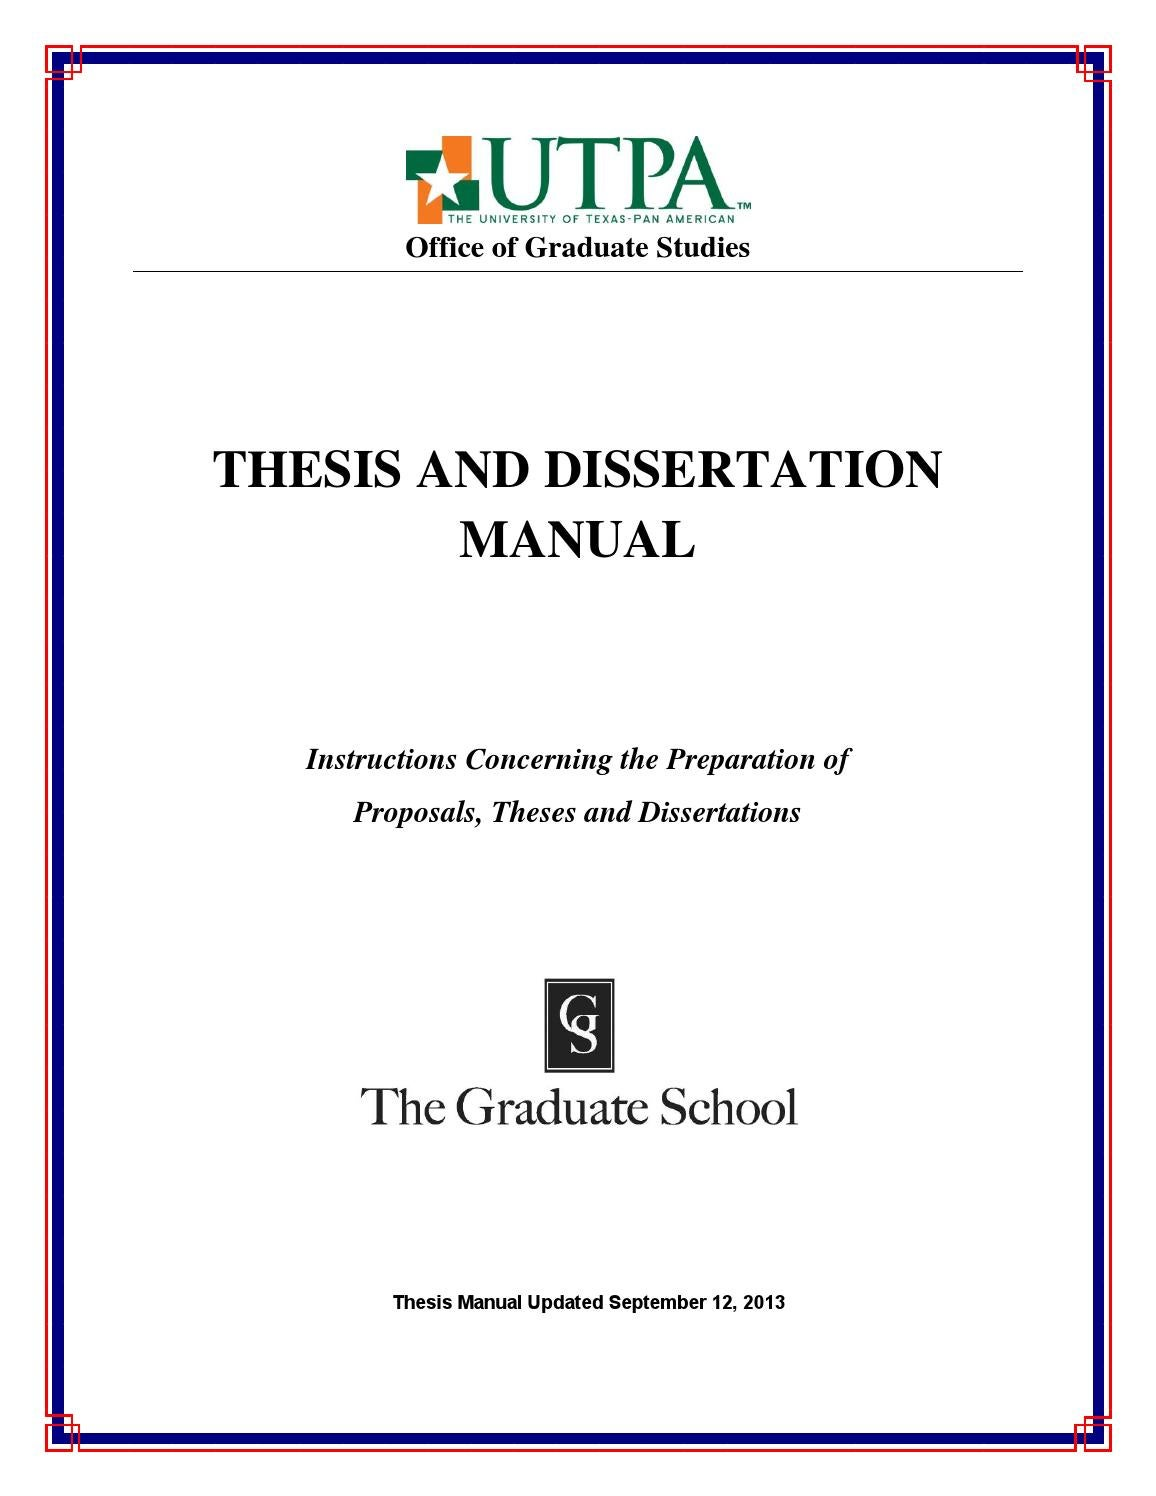 American university masters thesis